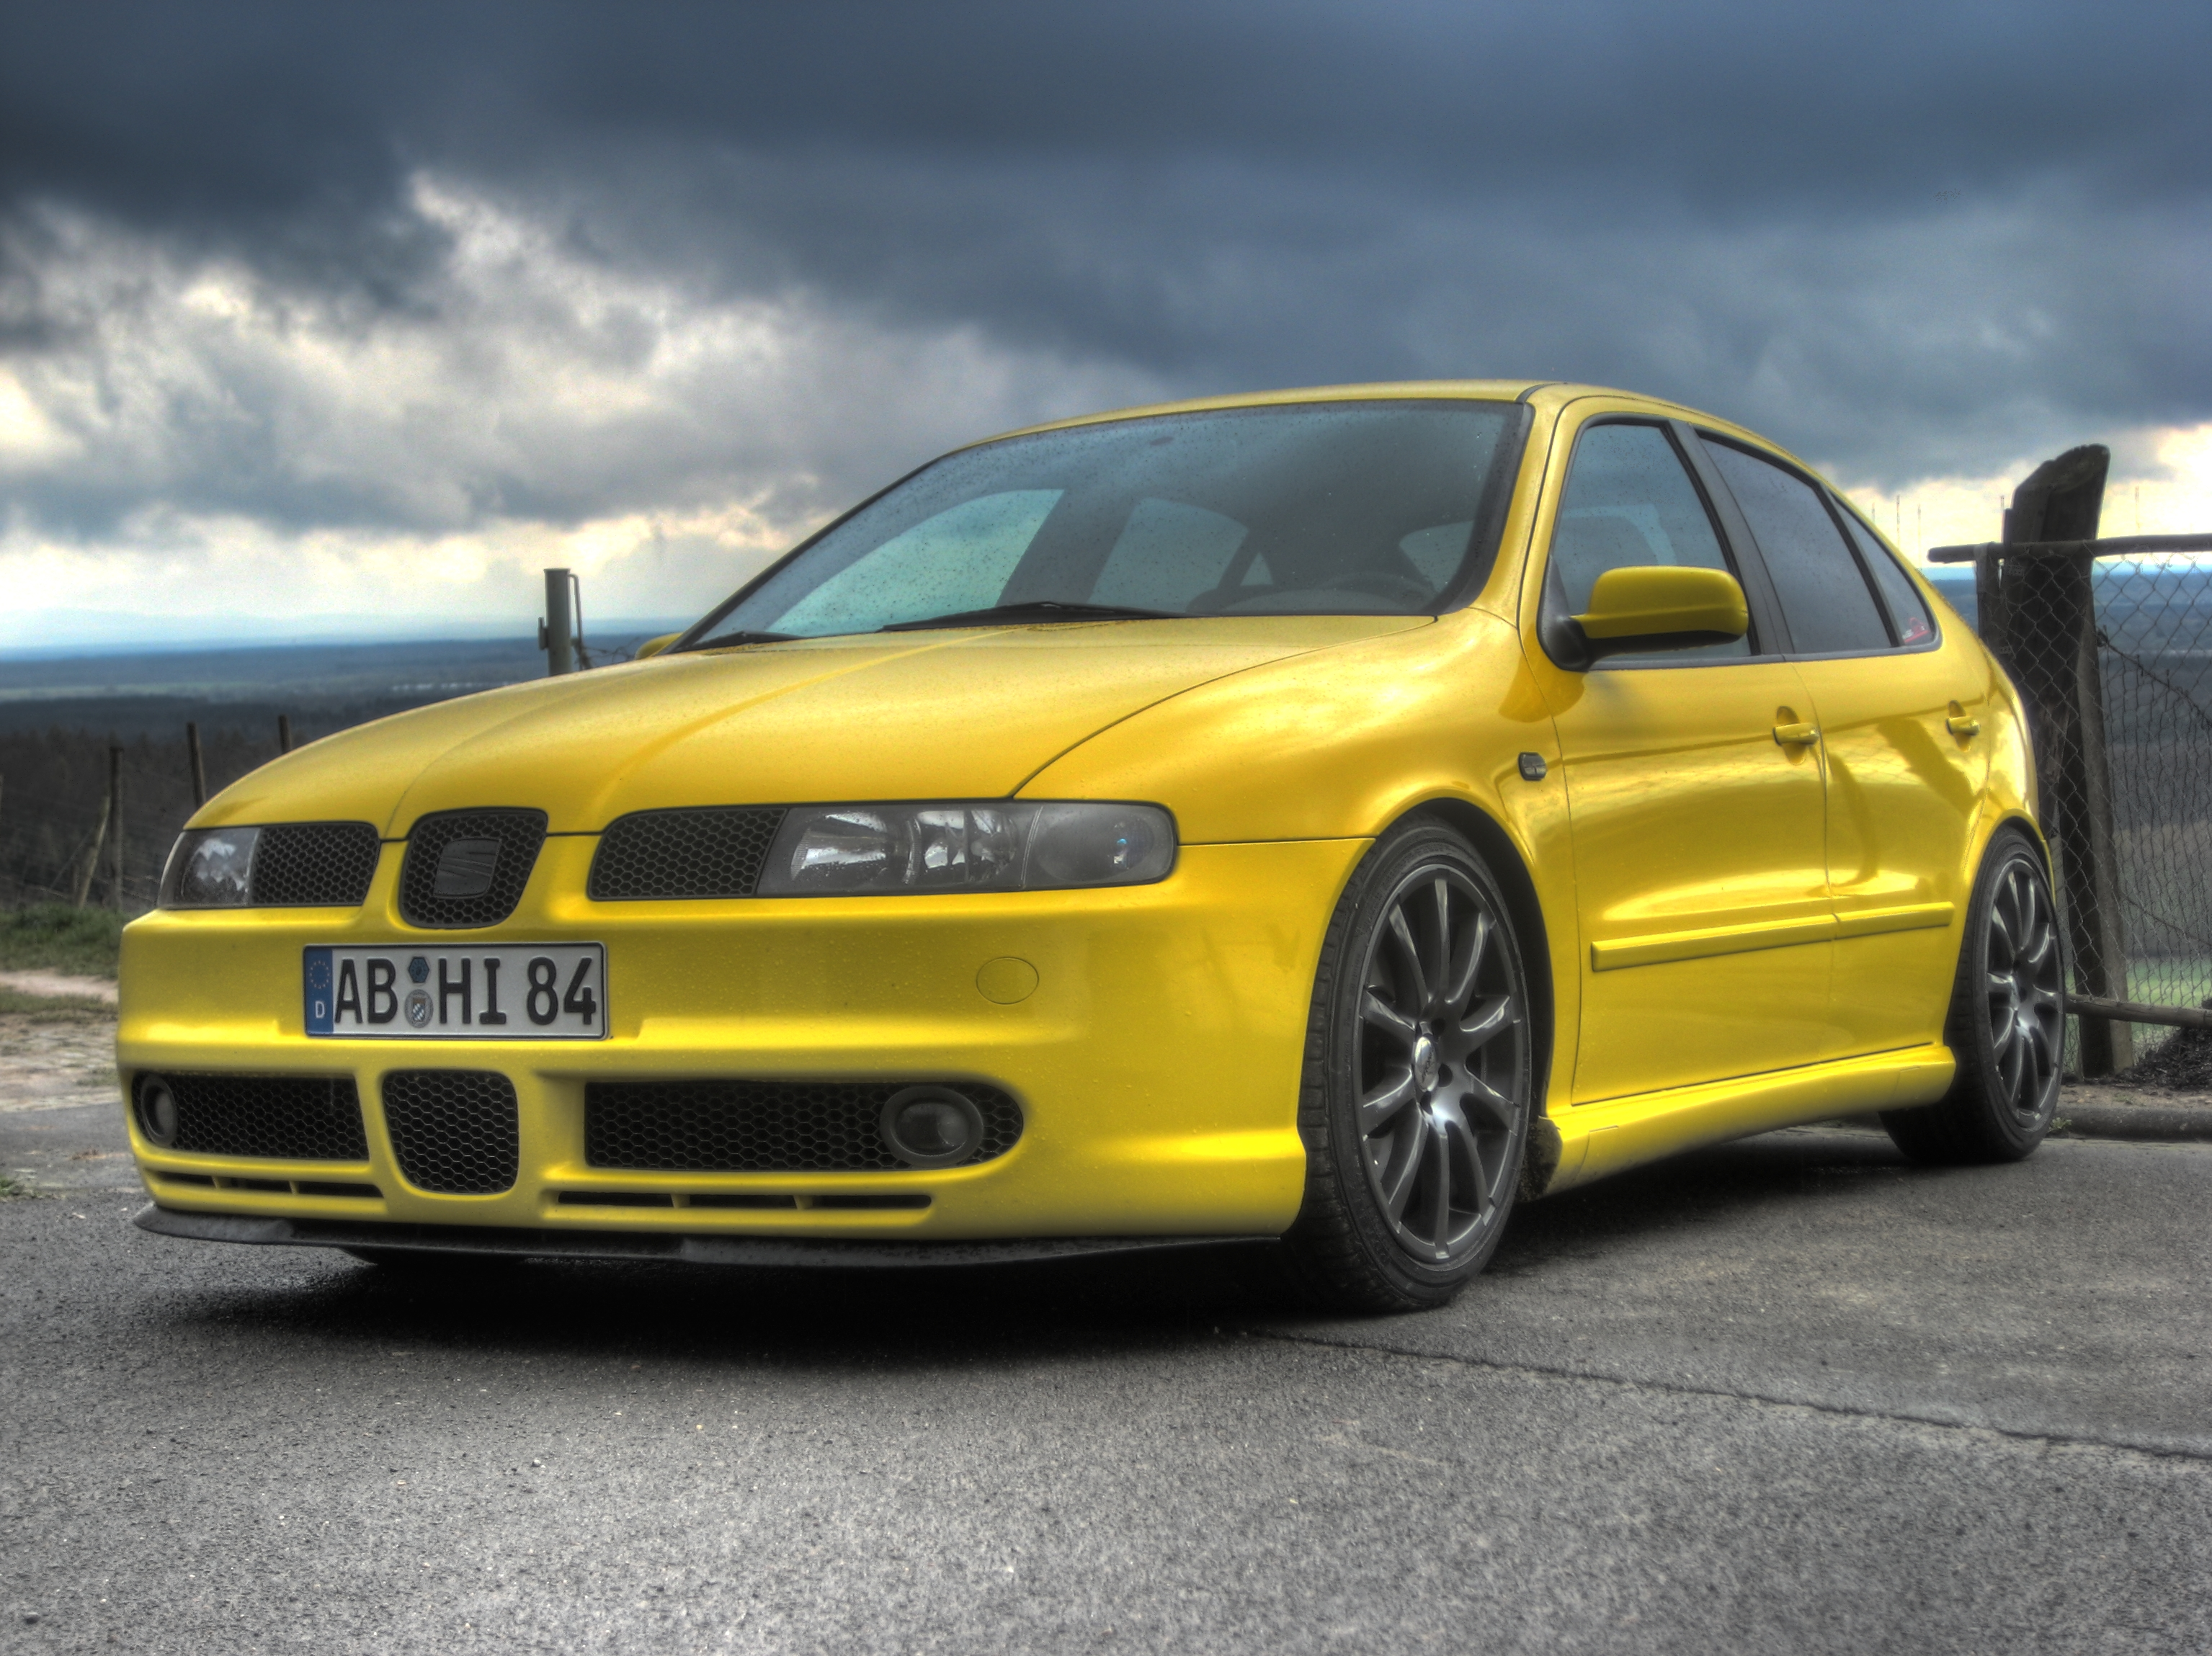 seat leon yellow 1m hdr front by snakebite84 on deviantart. Black Bedroom Furniture Sets. Home Design Ideas